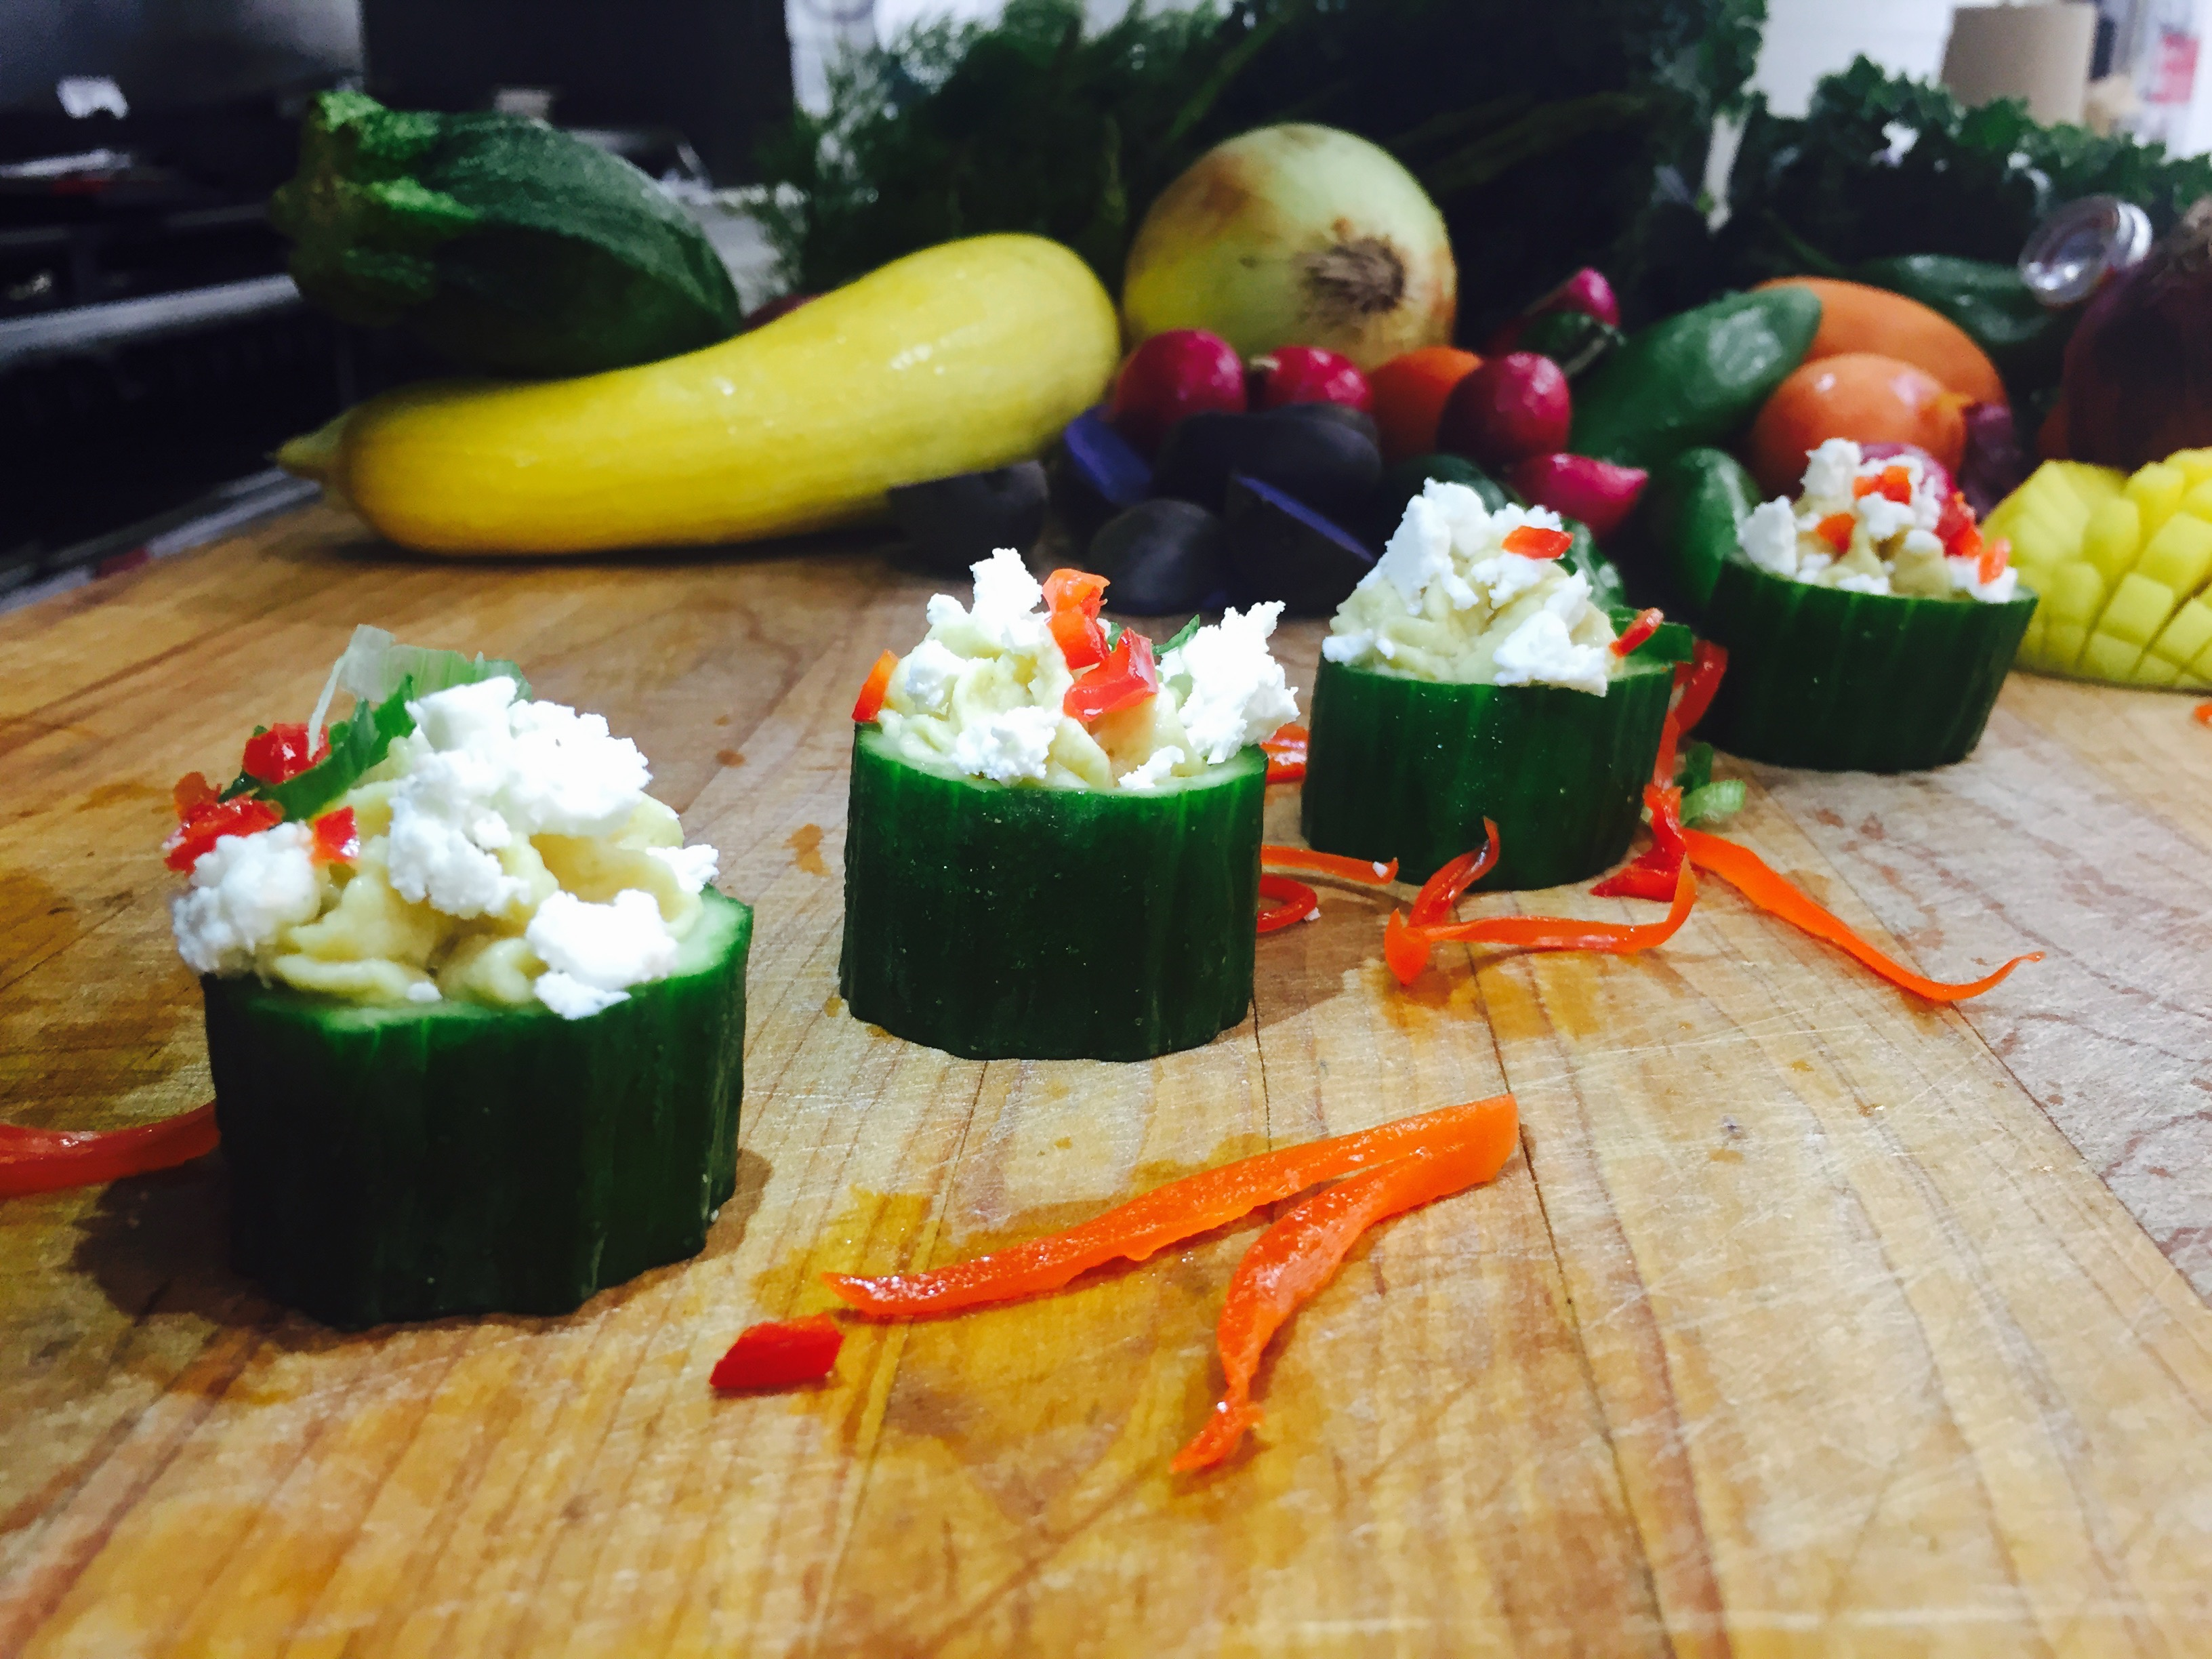 Lemony Hummus Topped with Feta Cheese in Cucumber Cups